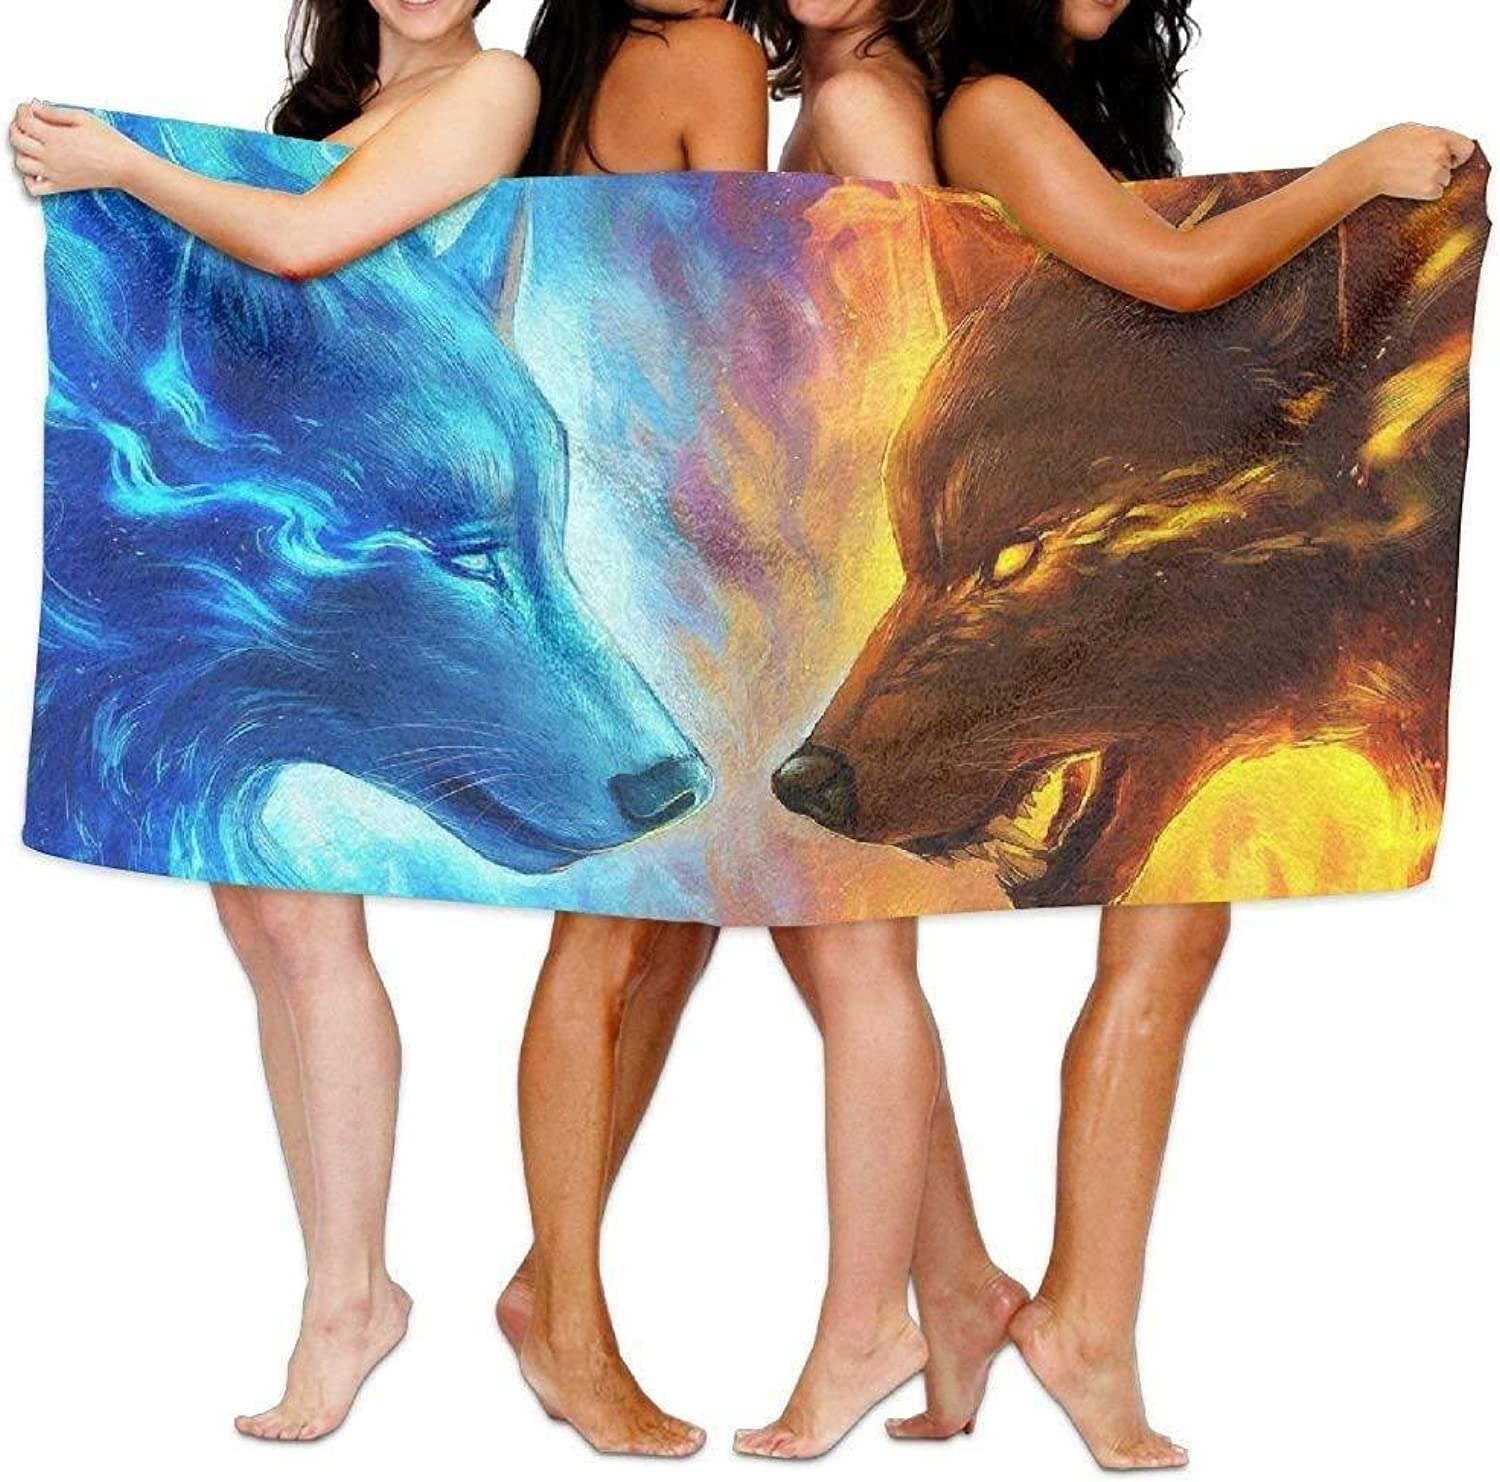 Fire and Water Wolf Luxury Bath Towel Hotel & Spa ExtraAbsorbent Towel for Beach & Bath 31.5  x 51.2 (80cm x 130cm)